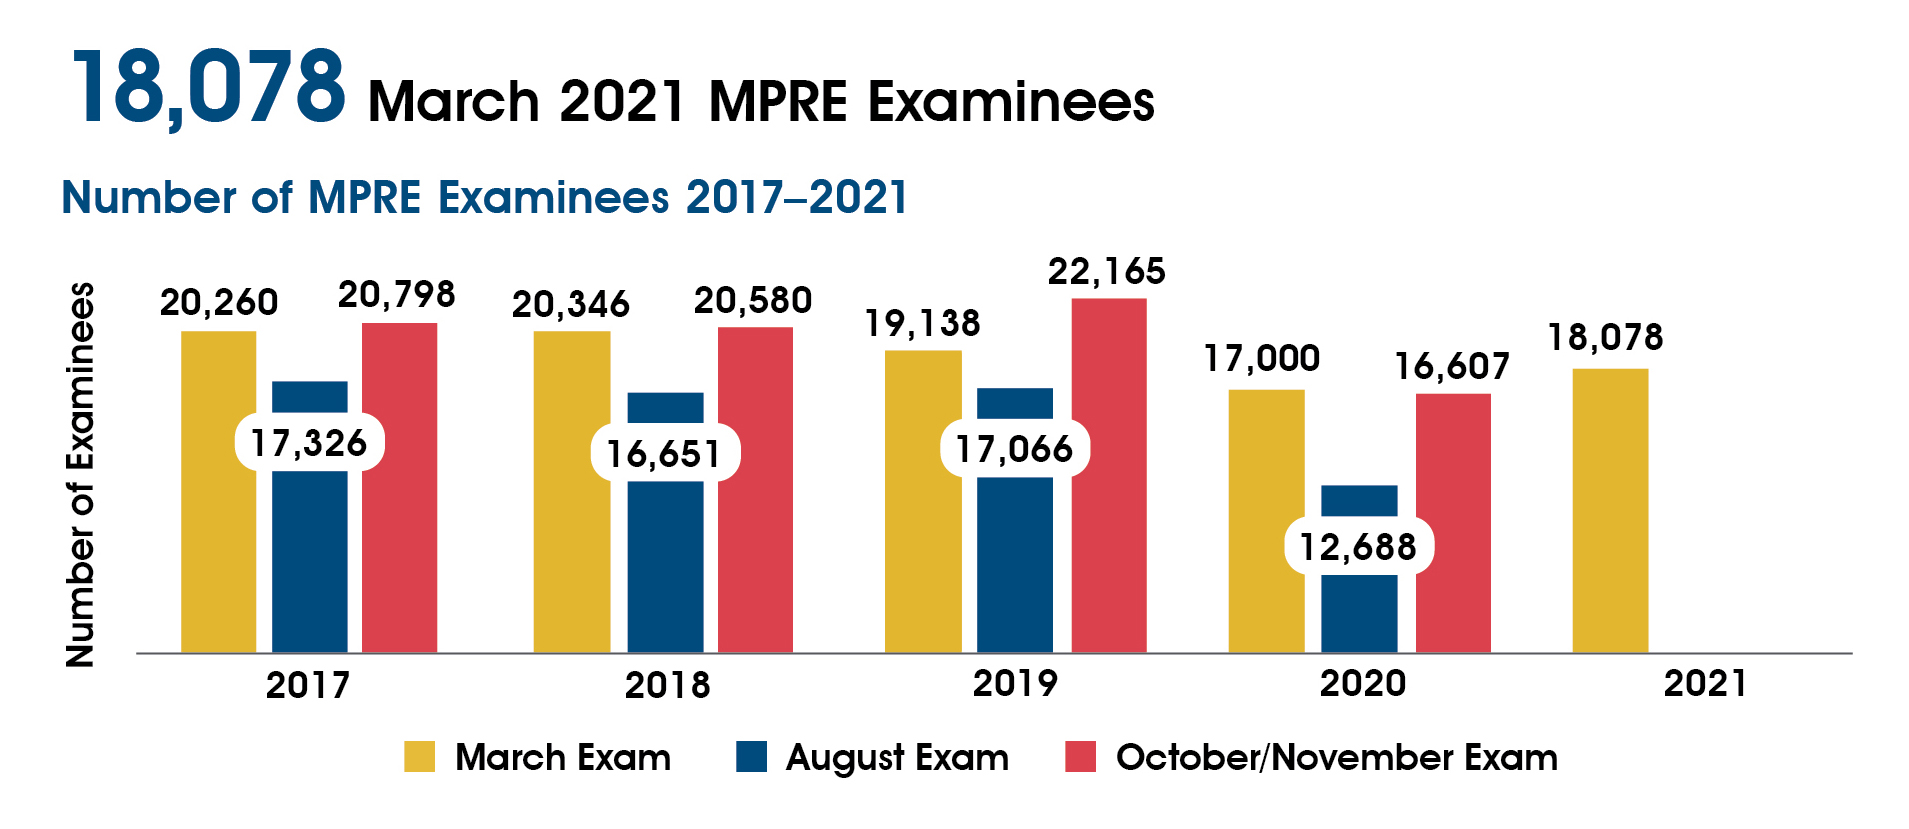 A chart showing the number of MPRE examinees 2017-2021. In March 2017-2021 there were 20,260; 20,346; 19,138; 17,000; and 18,078 examinees. In August 2017-2020 there were 17,326; 16,651; 17,066; and 12,688 examinees. In October/November 2017-2020 there were 20,798; 20,580; 22,165; and 16,607 examinees.